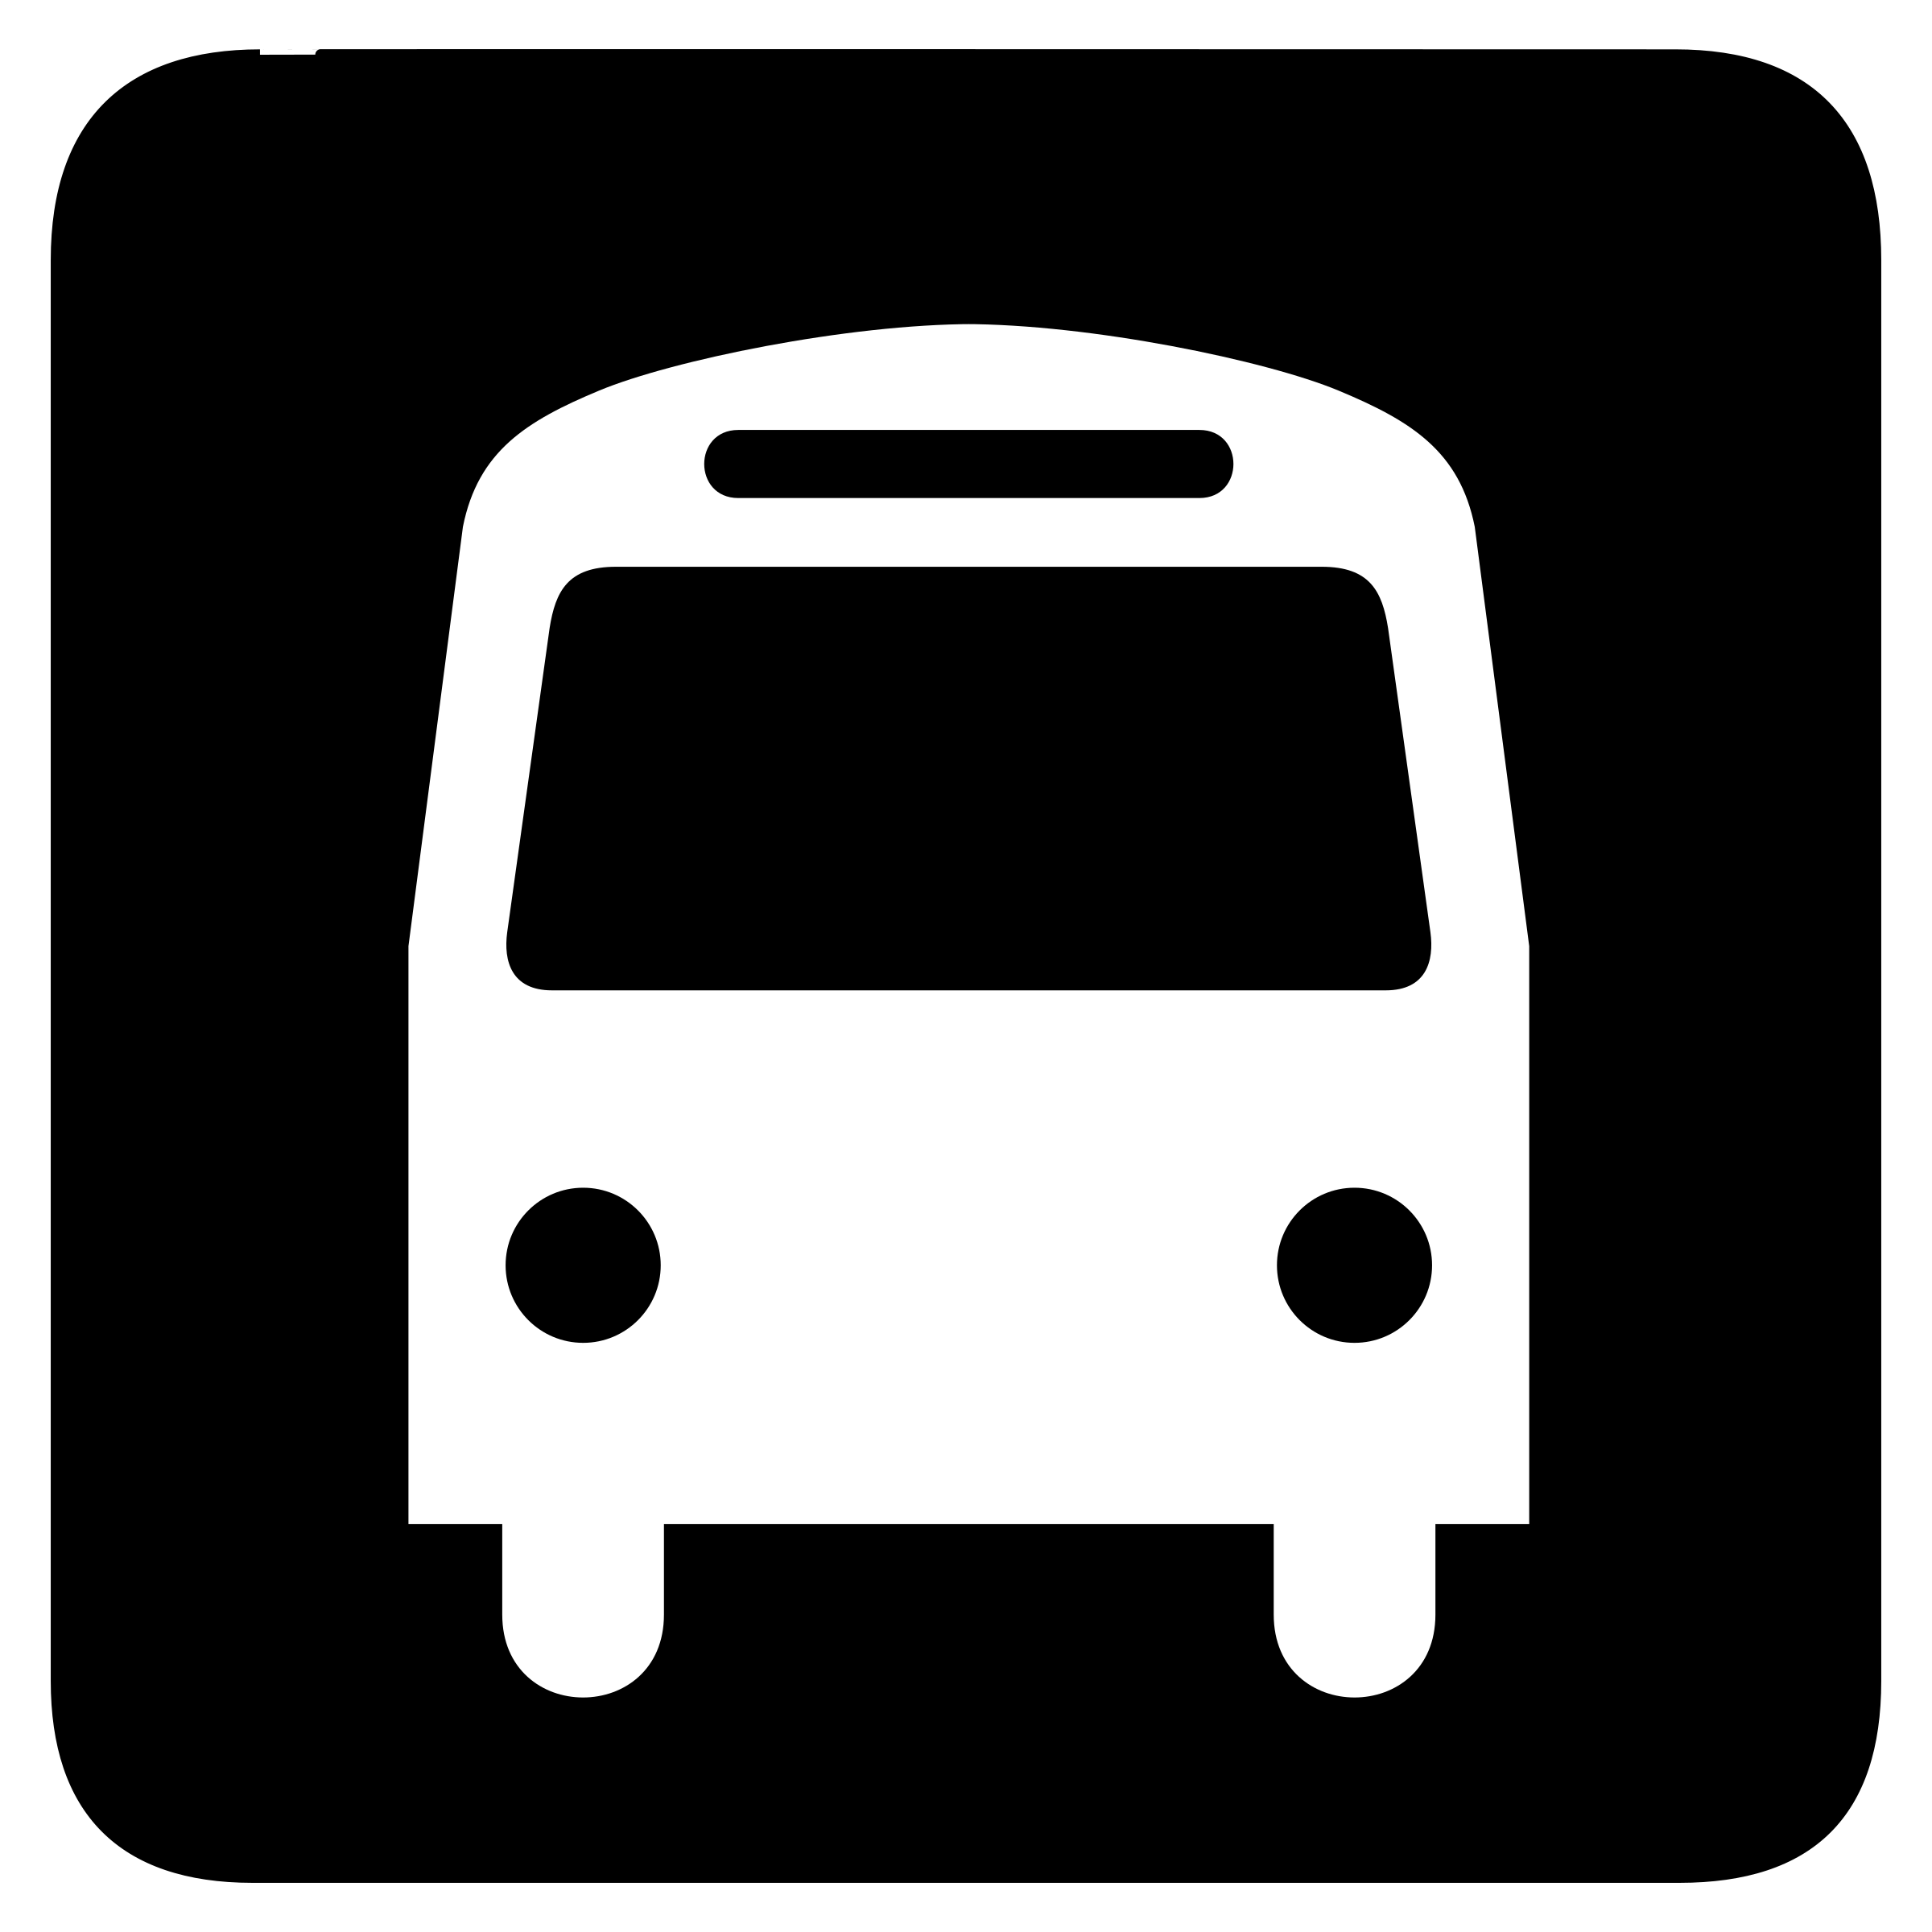 aiga bus bg by jean_victor_balin